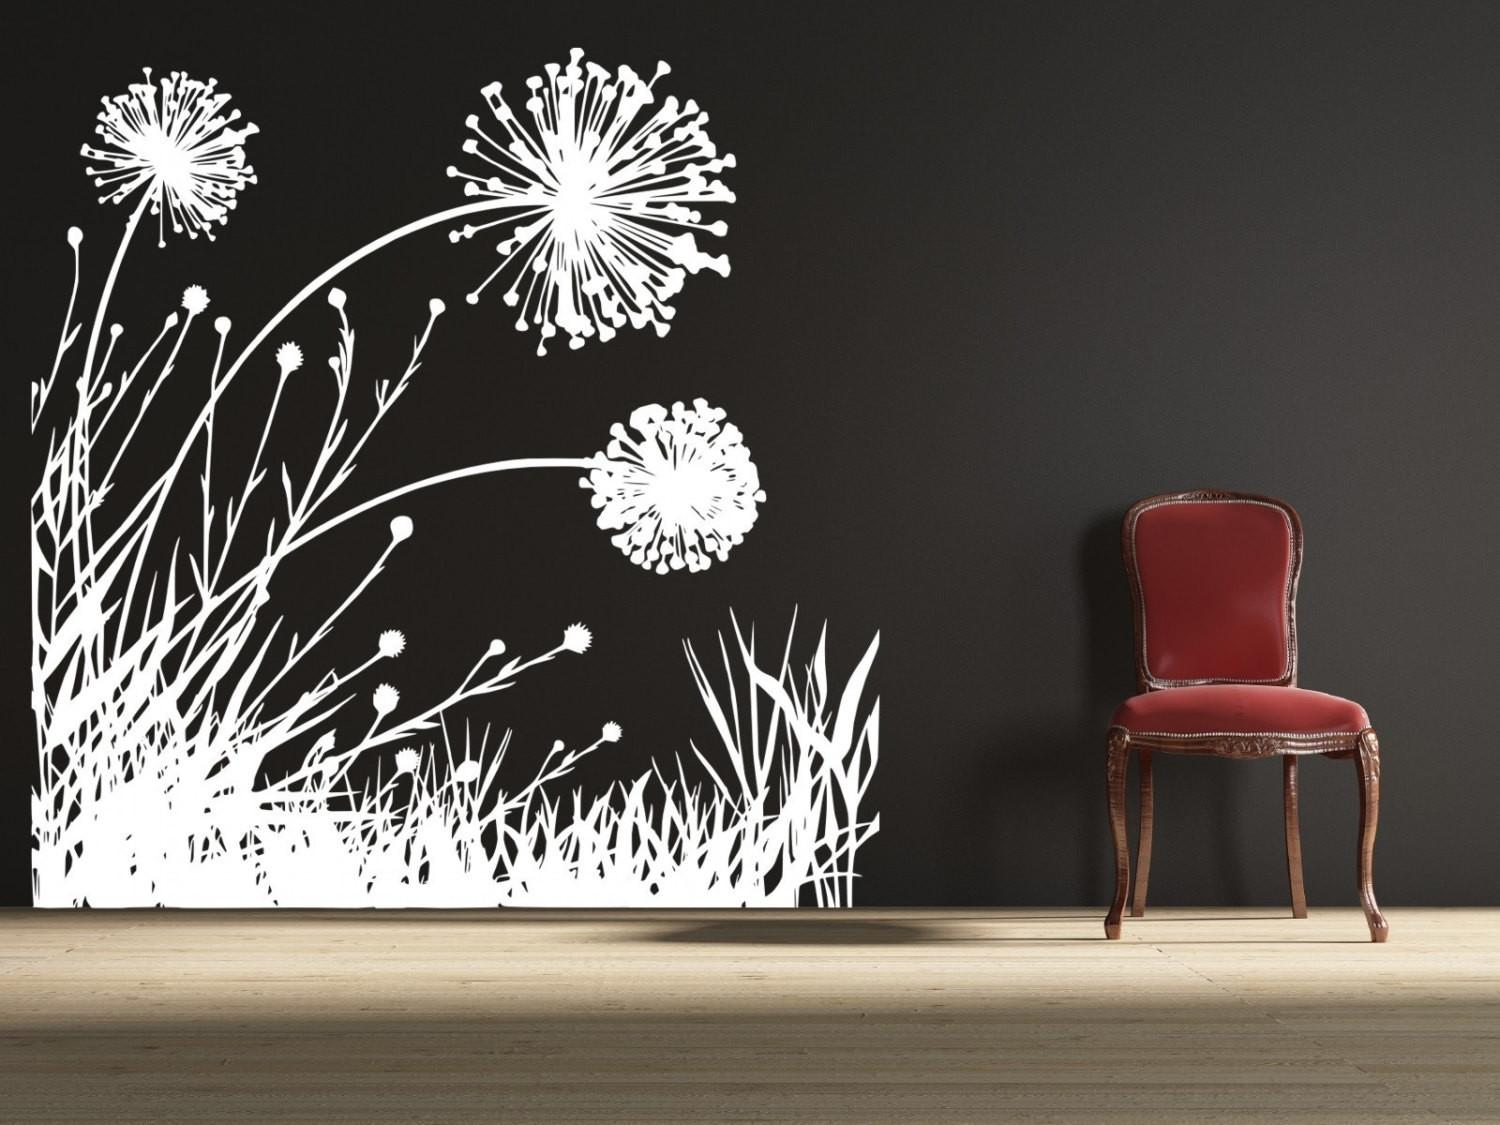 Dandelion Field Uber Decals Wall Decal Vinyl Decor Art